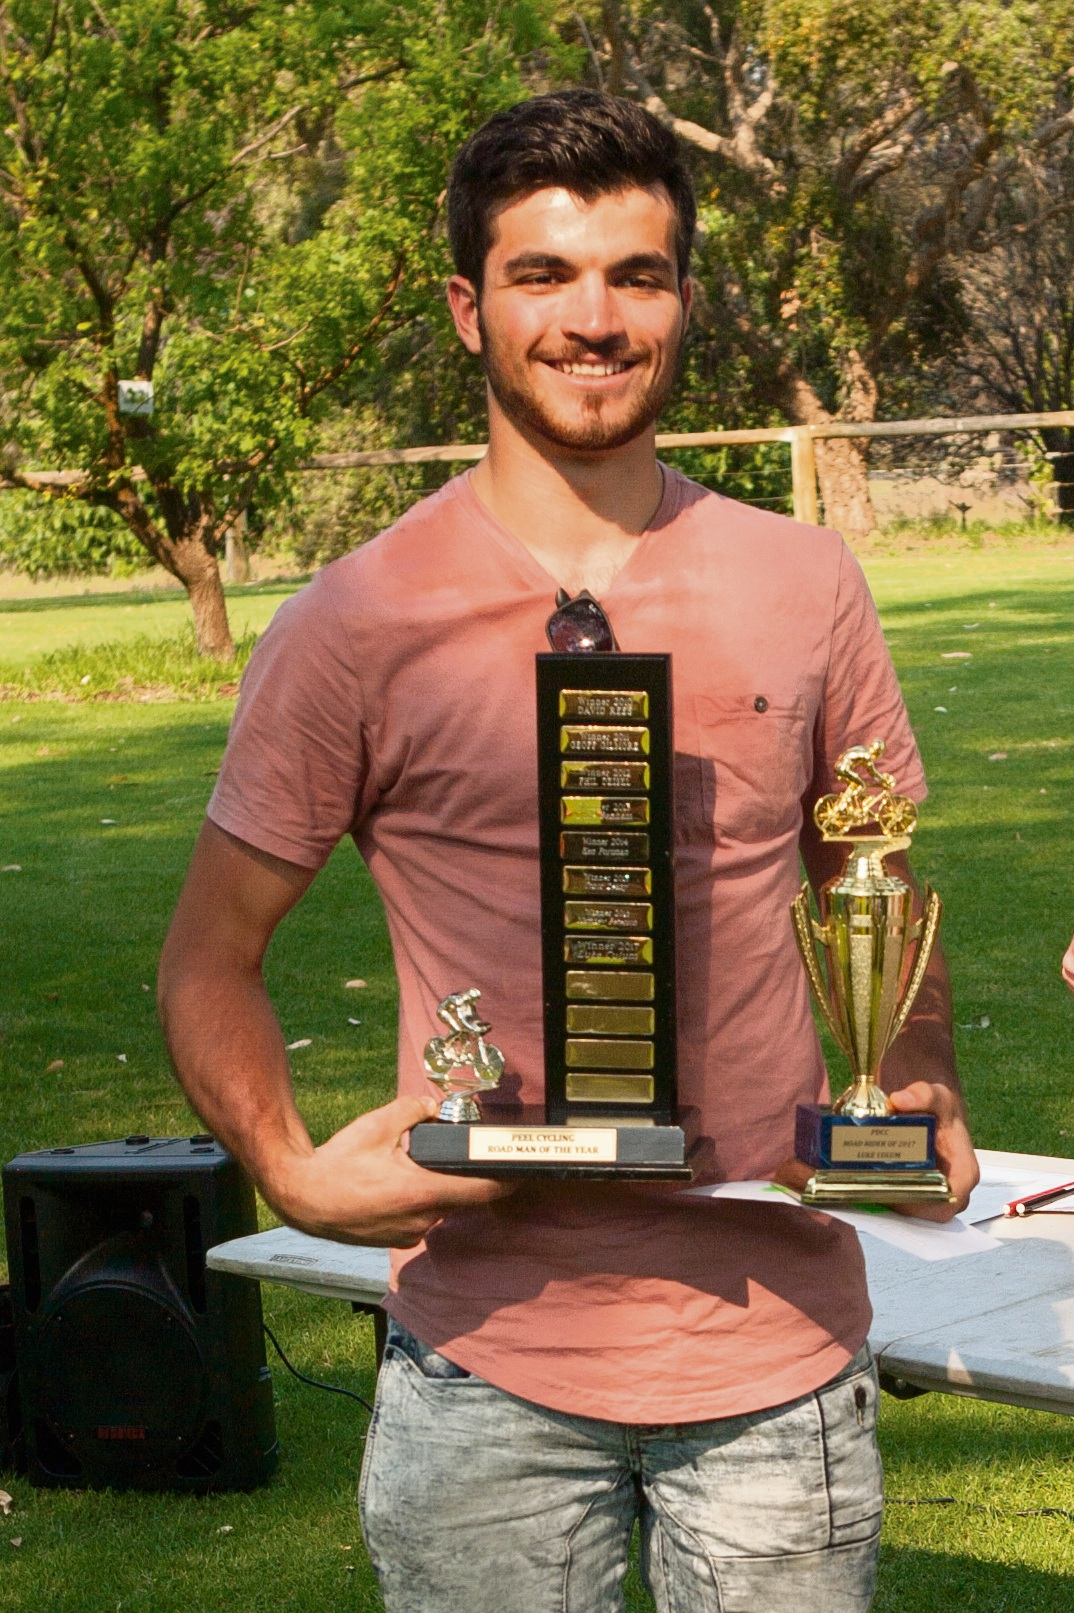 Luke Colum winners of Road Rider of the year as well as B grade Road Race and C grade Criterium Champion.